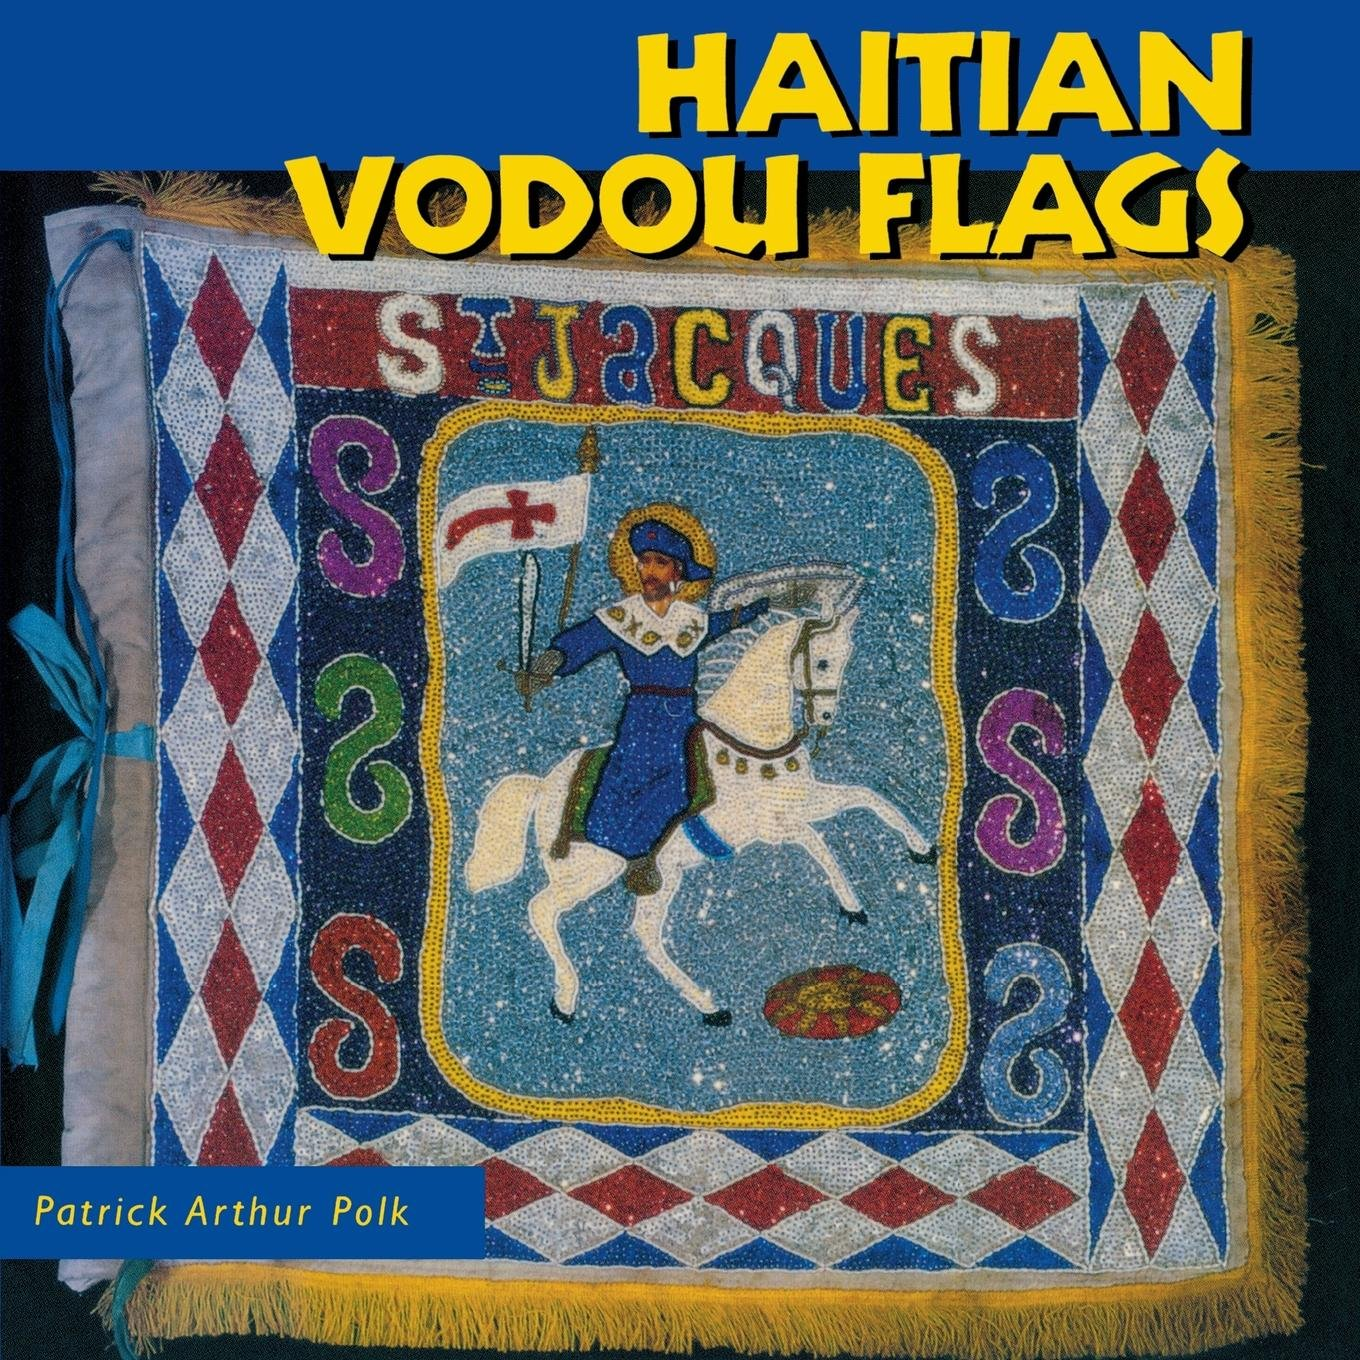 Sacred Arts Of Haitian Vodou Ebook Onkyo Eq25 Wiring Diagram Array Flags Folk Art And Artists Series Patrick Arthur Rh